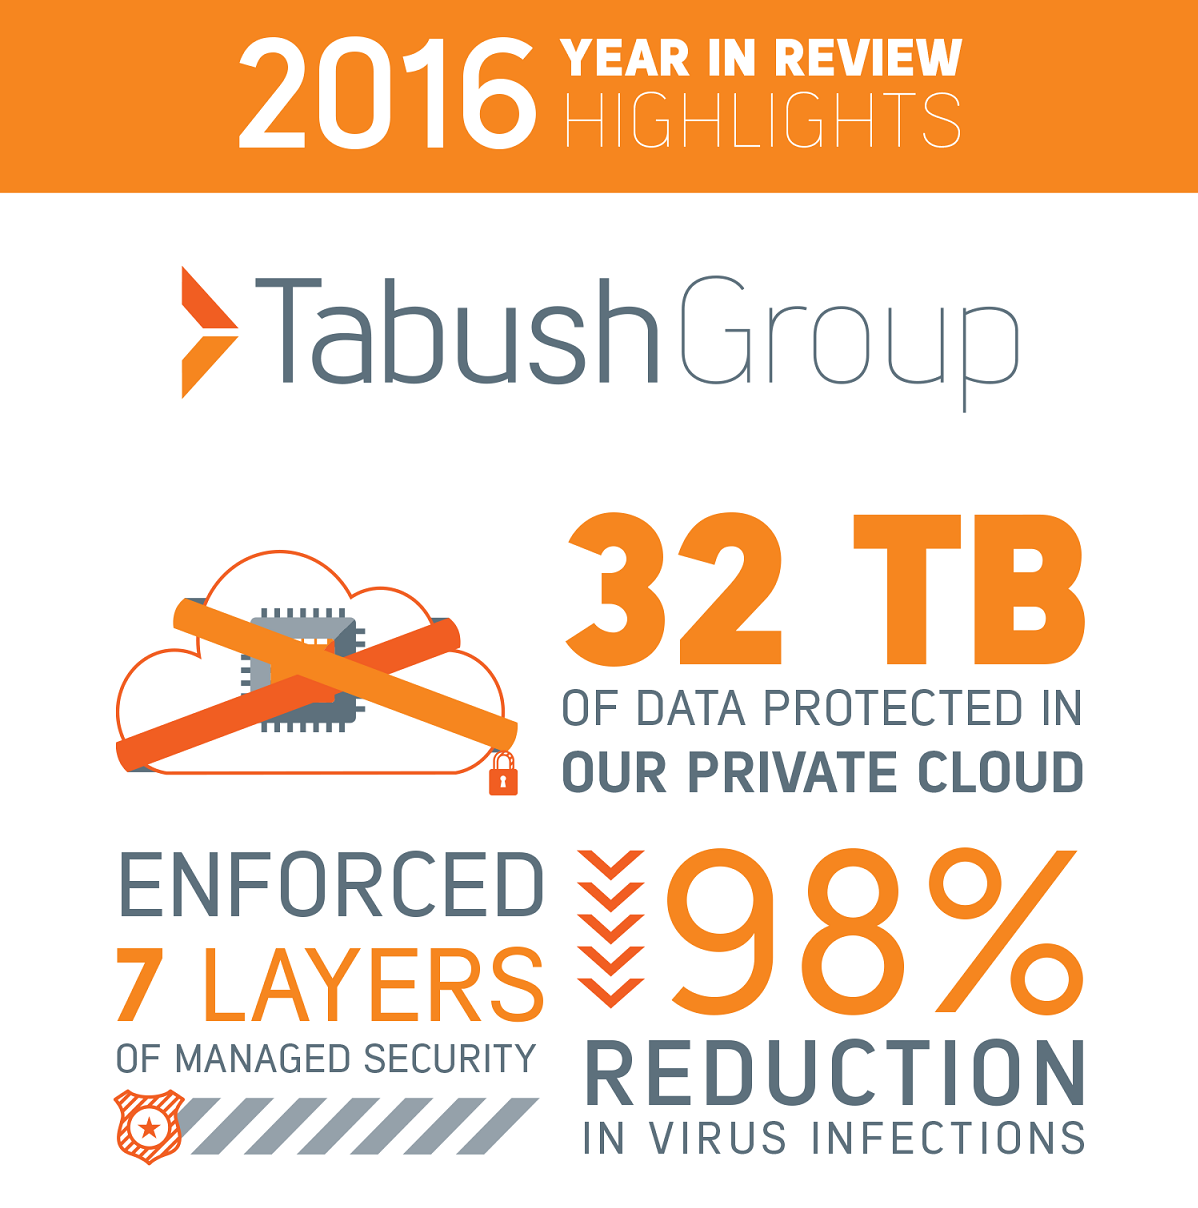 Tabush_2016_year_review_infographic_social post.png